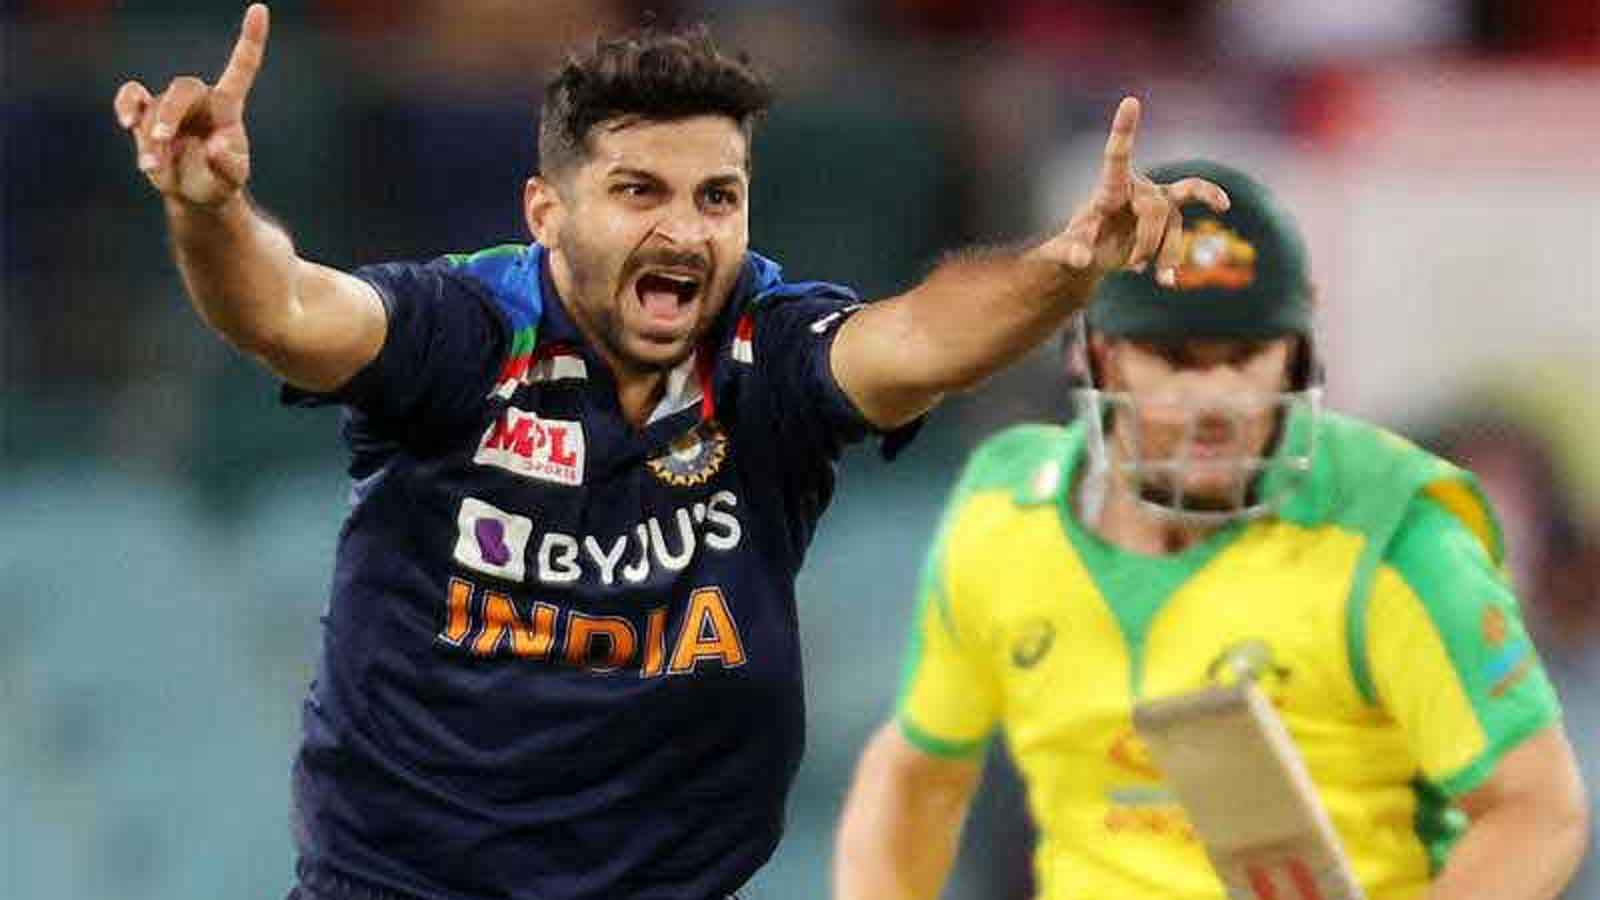 india-vs-australia-odi-series-wanted-to-put-them-on-back-foot-and-win-game-says-shardul-thakur